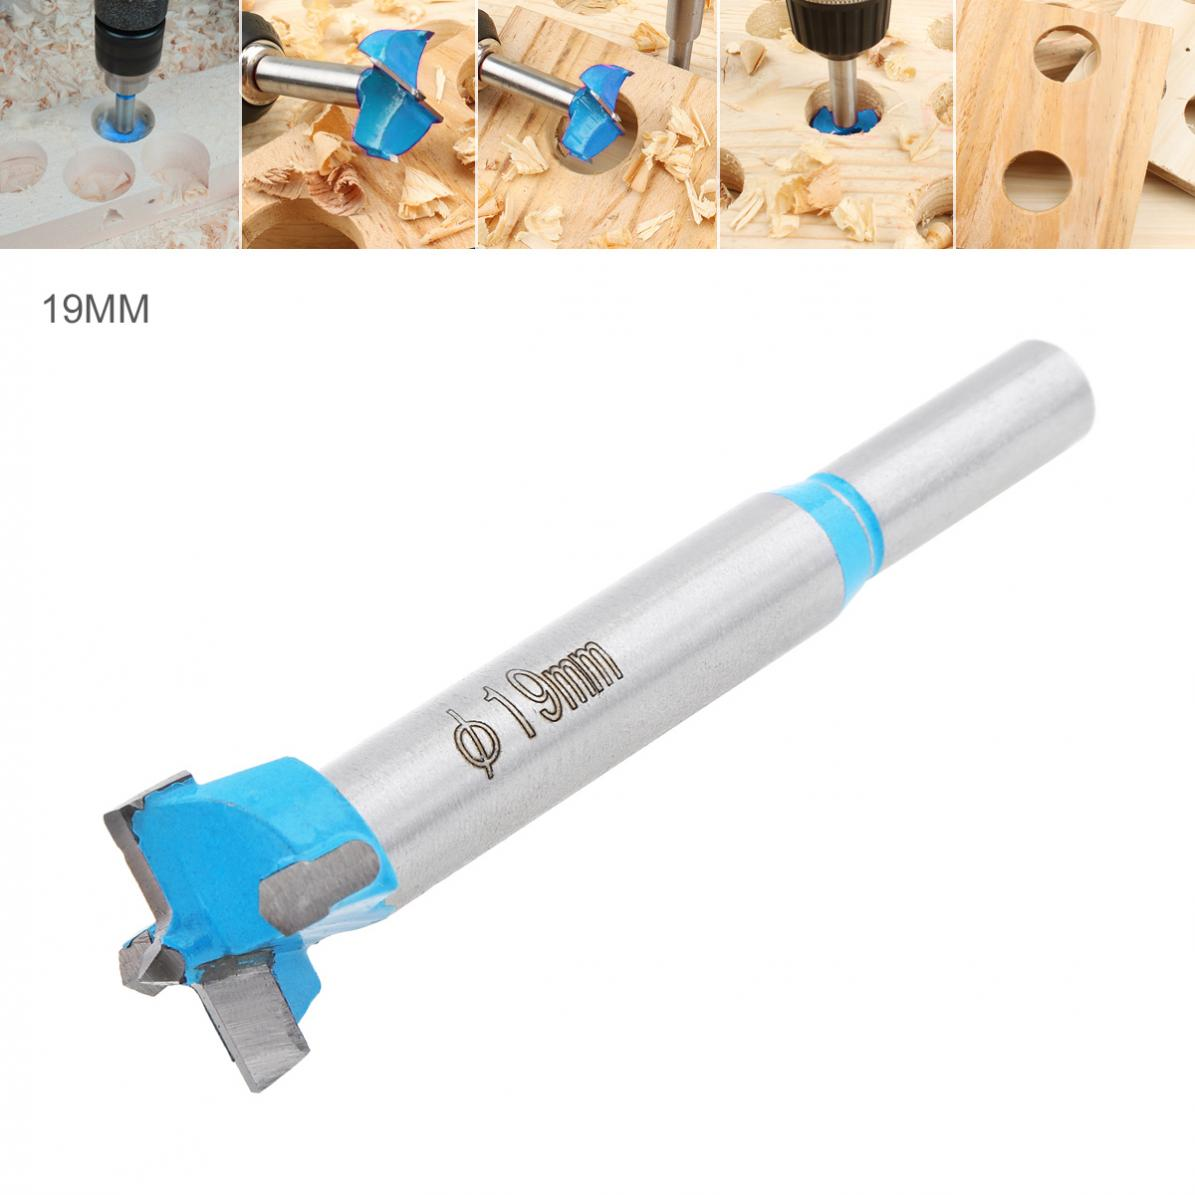 Drill Bits 19mm Hole Saw Wood Cutter Woodworking Tool for Wooden Products Perforation